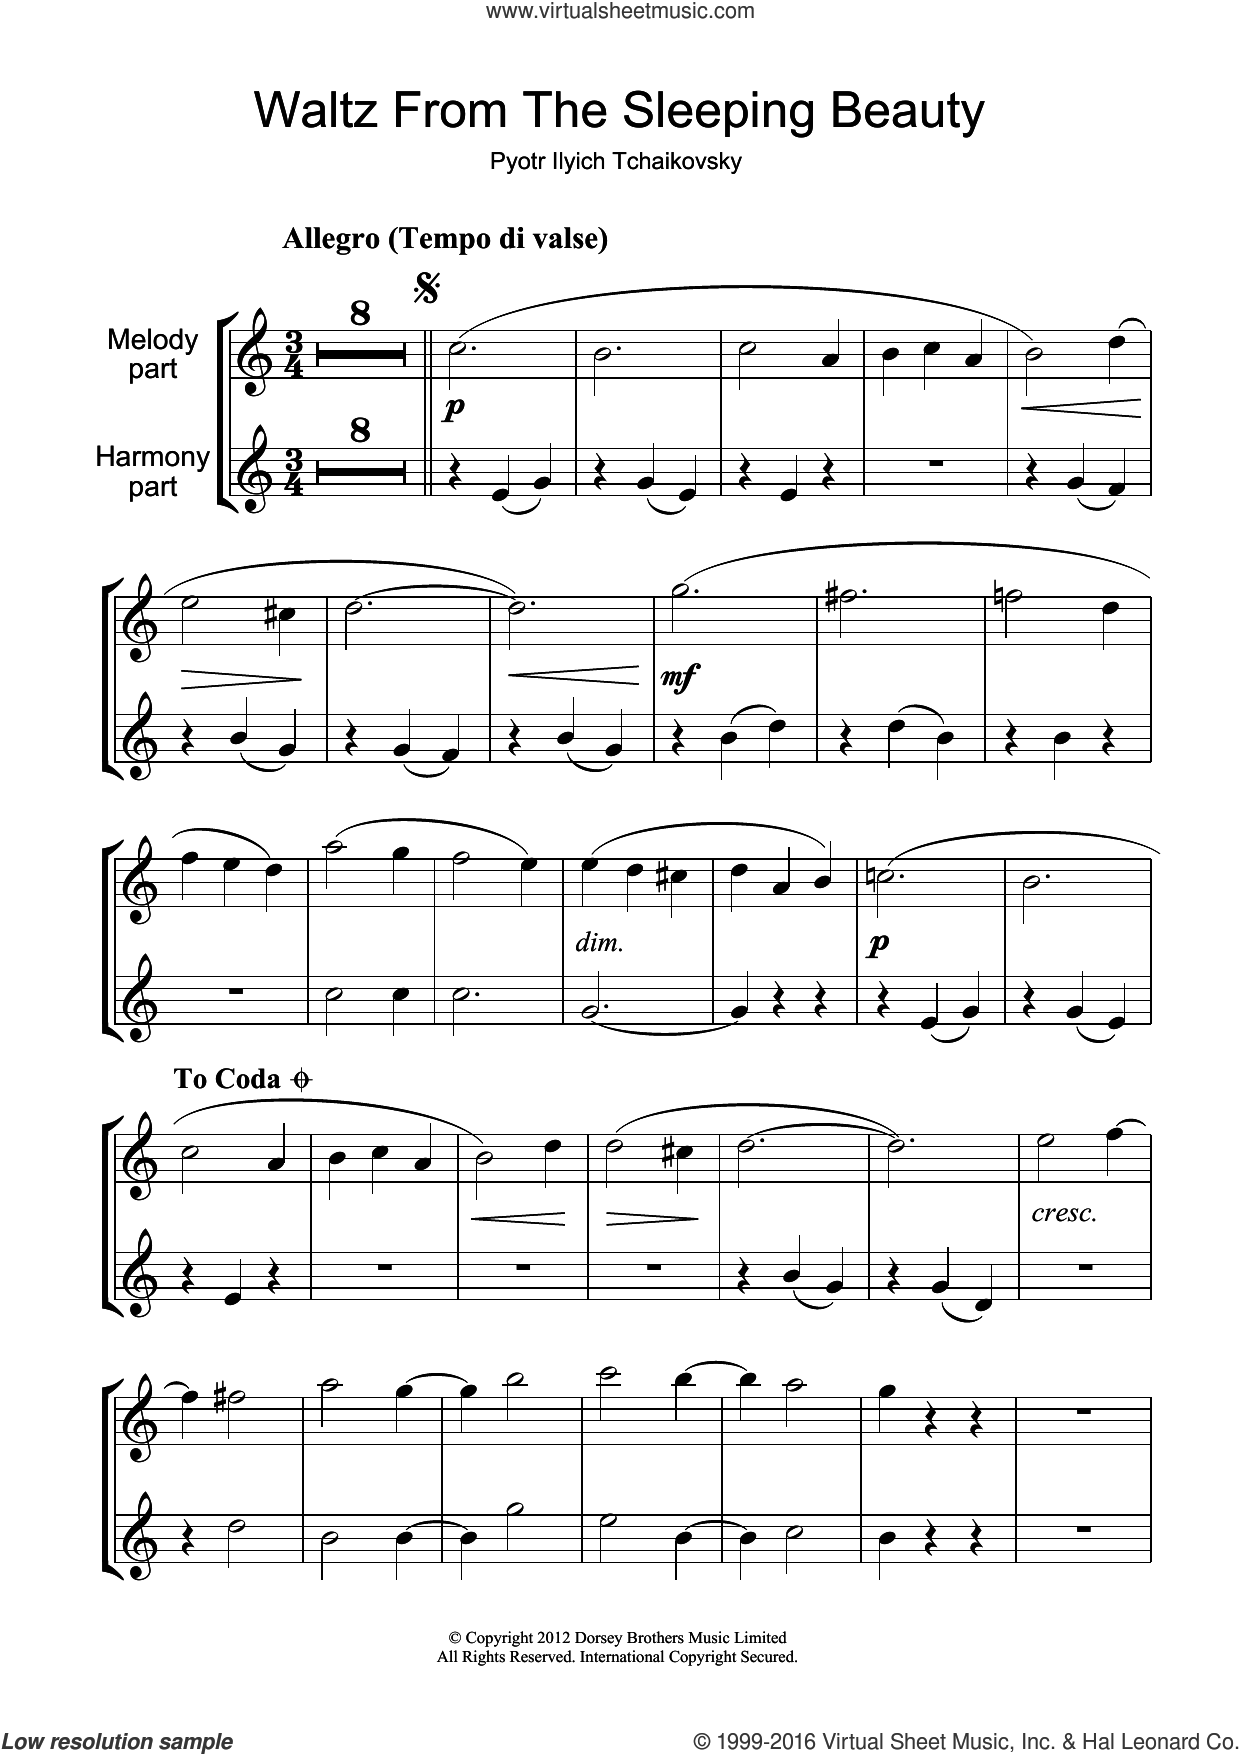 Waltz (from The Sleeping Beauty) sheet music for clarinet solo by Pyotr Ilyich Tchaikovsky, classical score, intermediate skill level